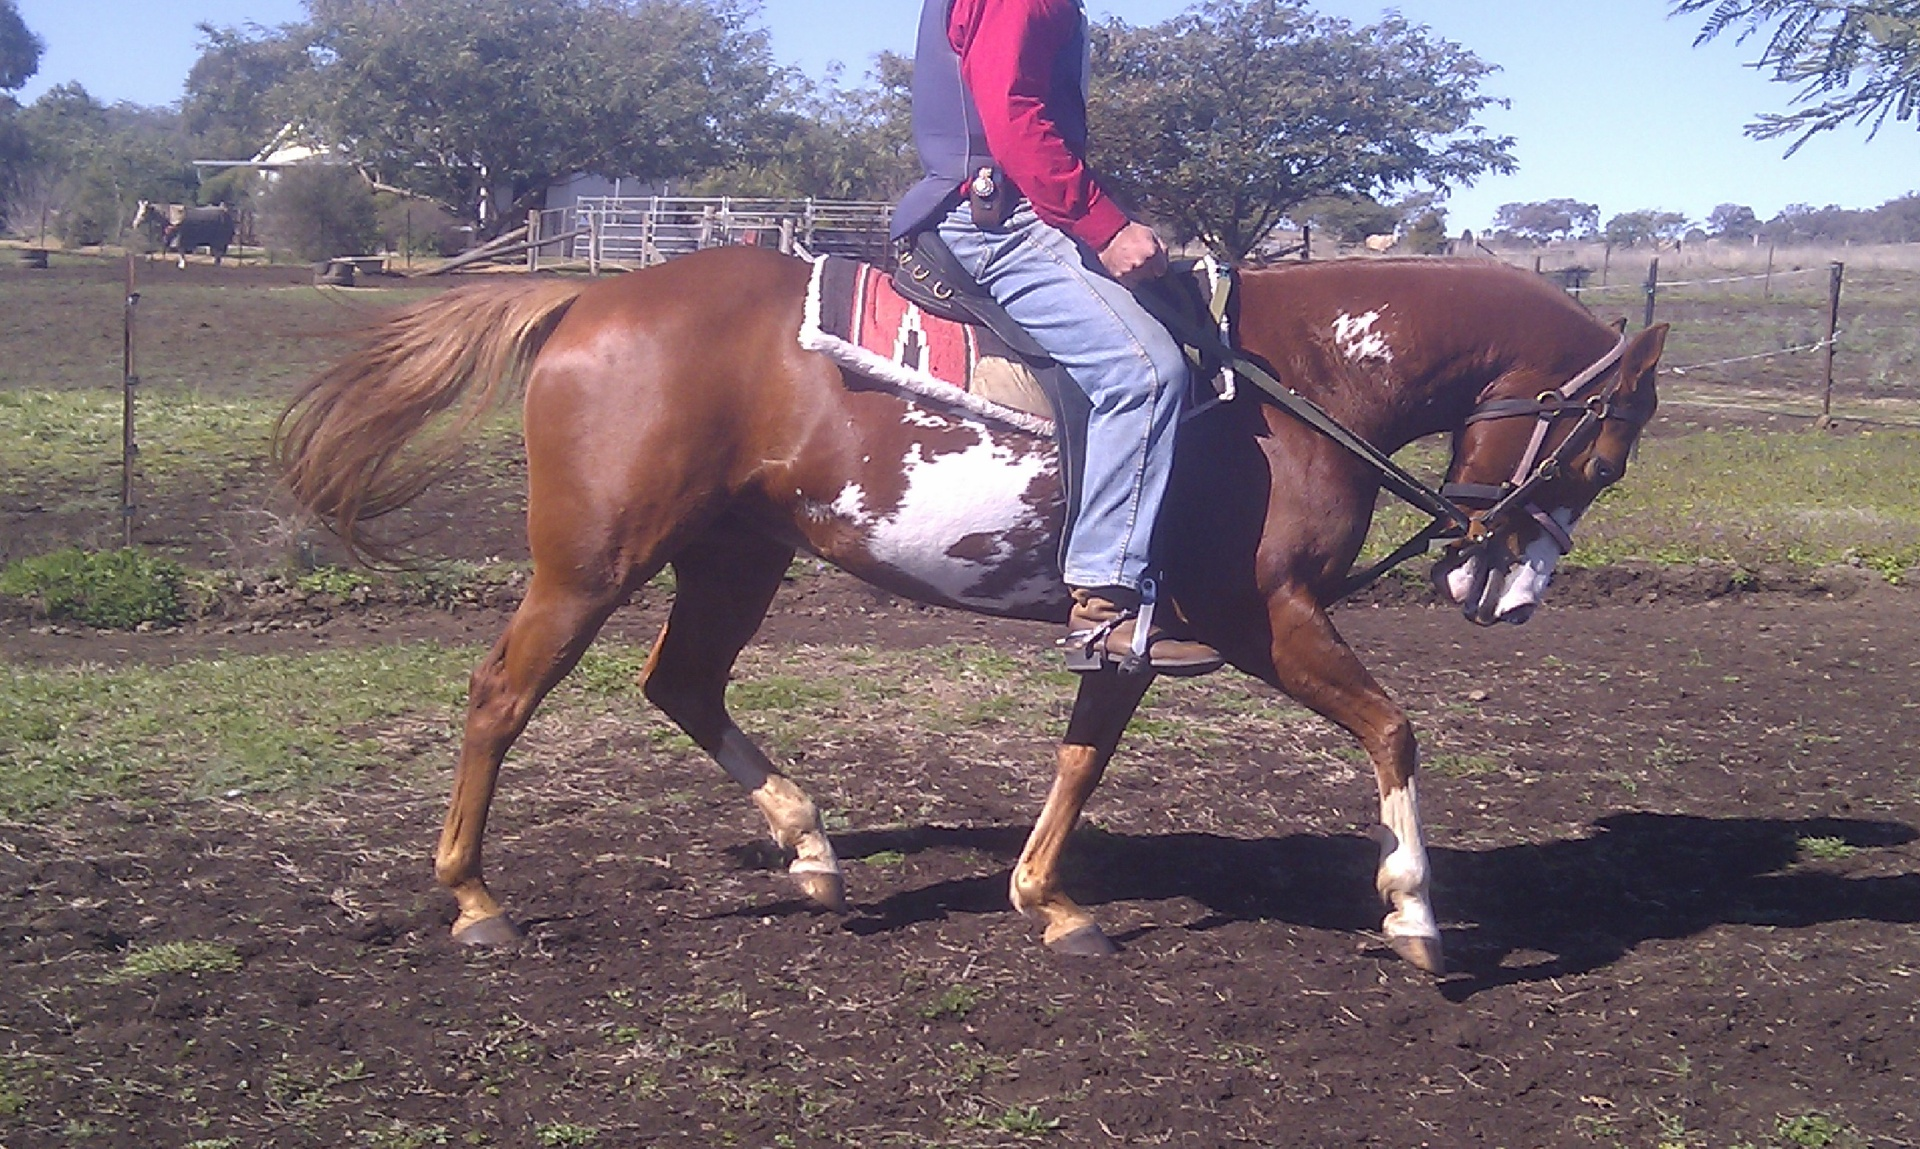 Snoopy's Montana Rose, a smart little performance horse under saddle